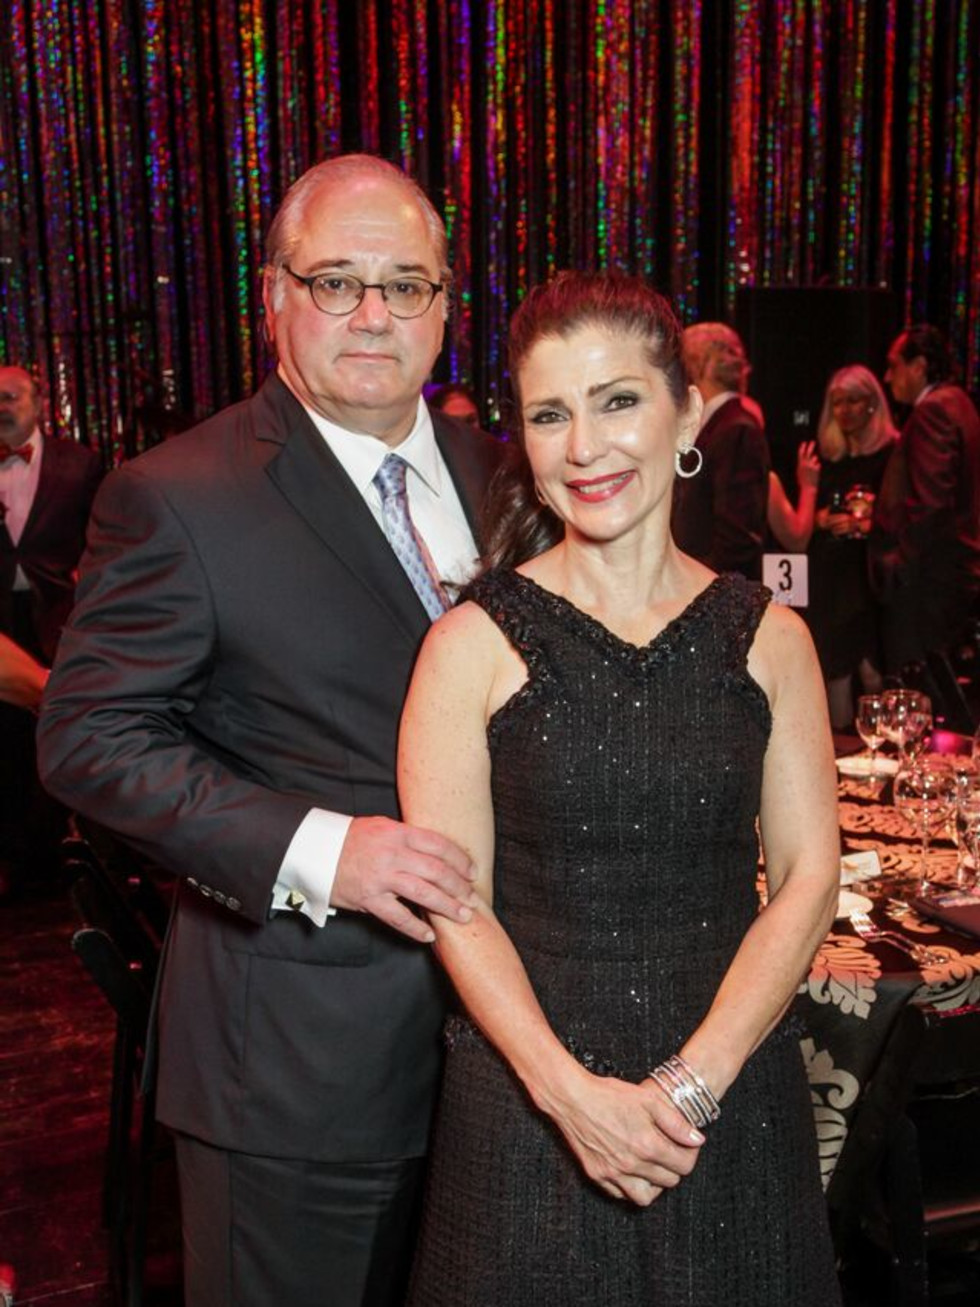 News, Shelby, Miller Outdoor Theatre gala, Oct. 2015, Tony Petrello, Cynthia Petrello